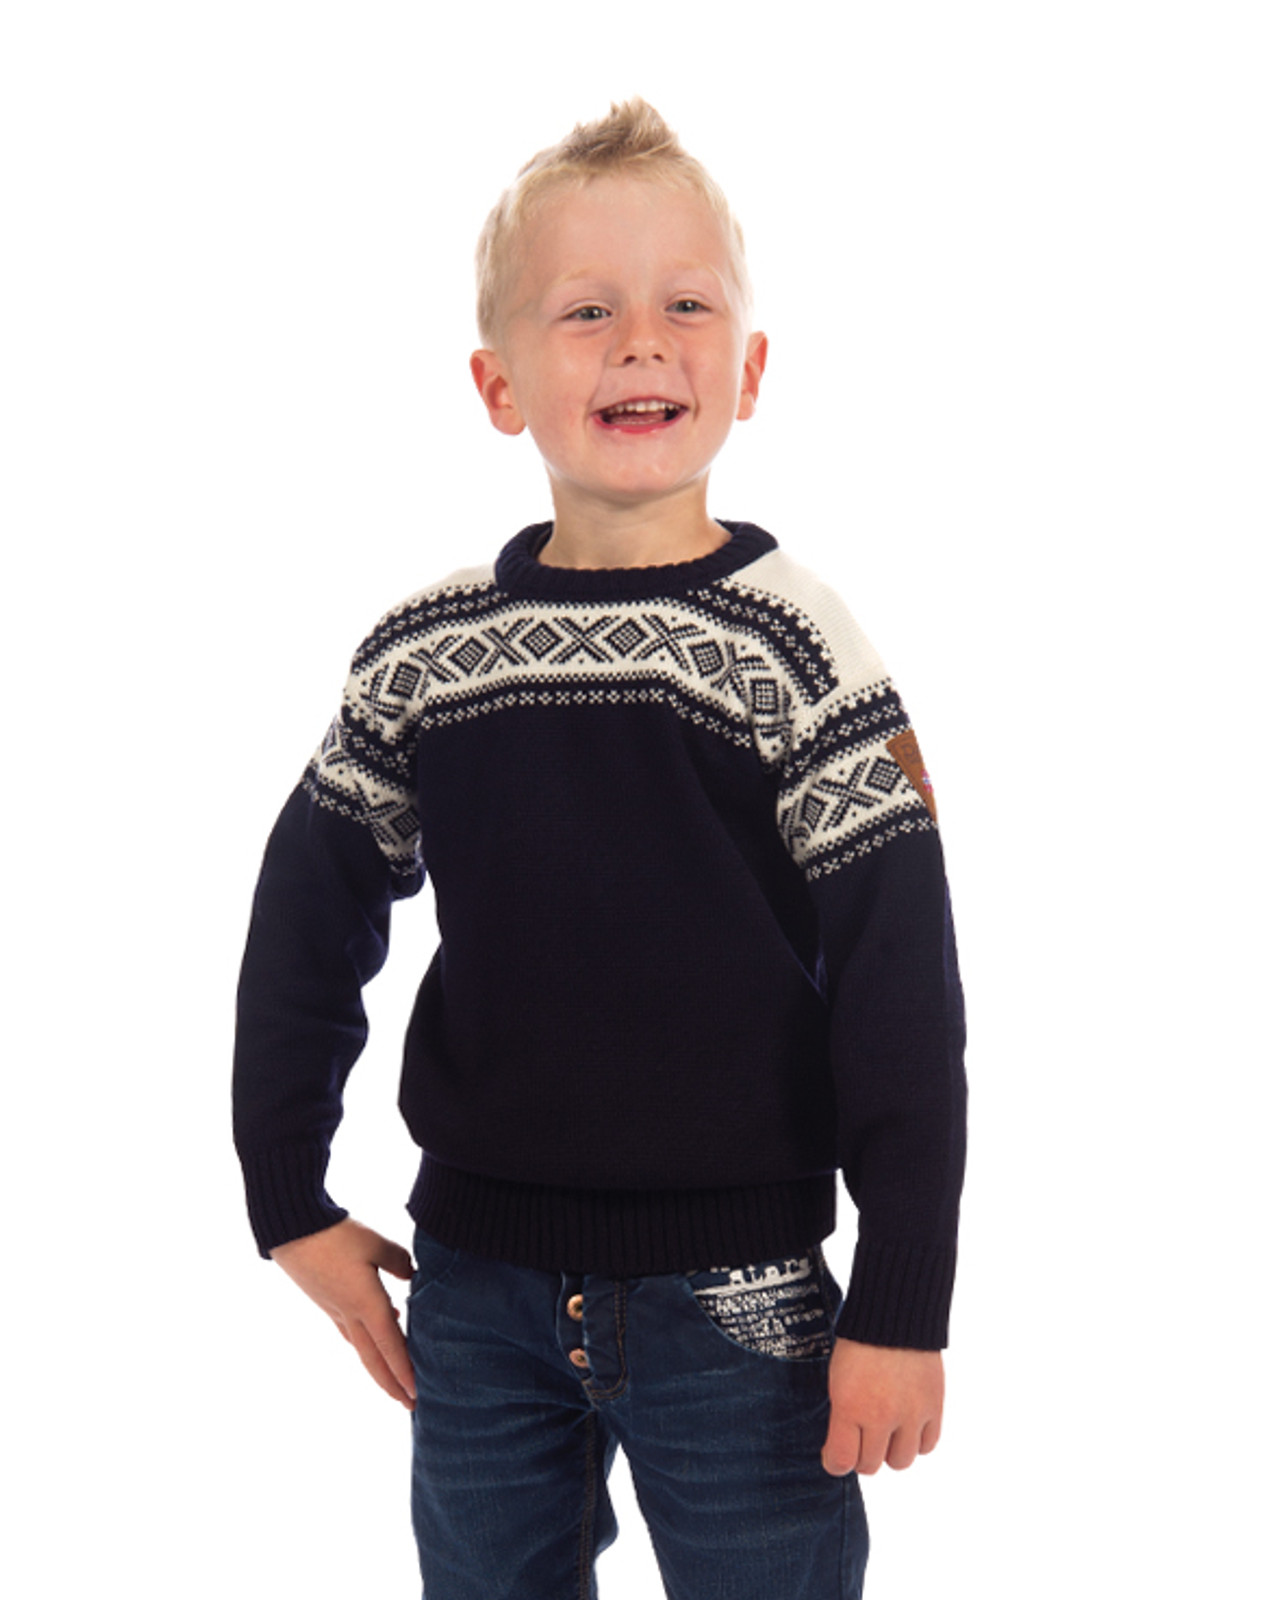 Child modeling the Dale of Norway, Cortina kids sweater in Navy/Off White, 92991-C